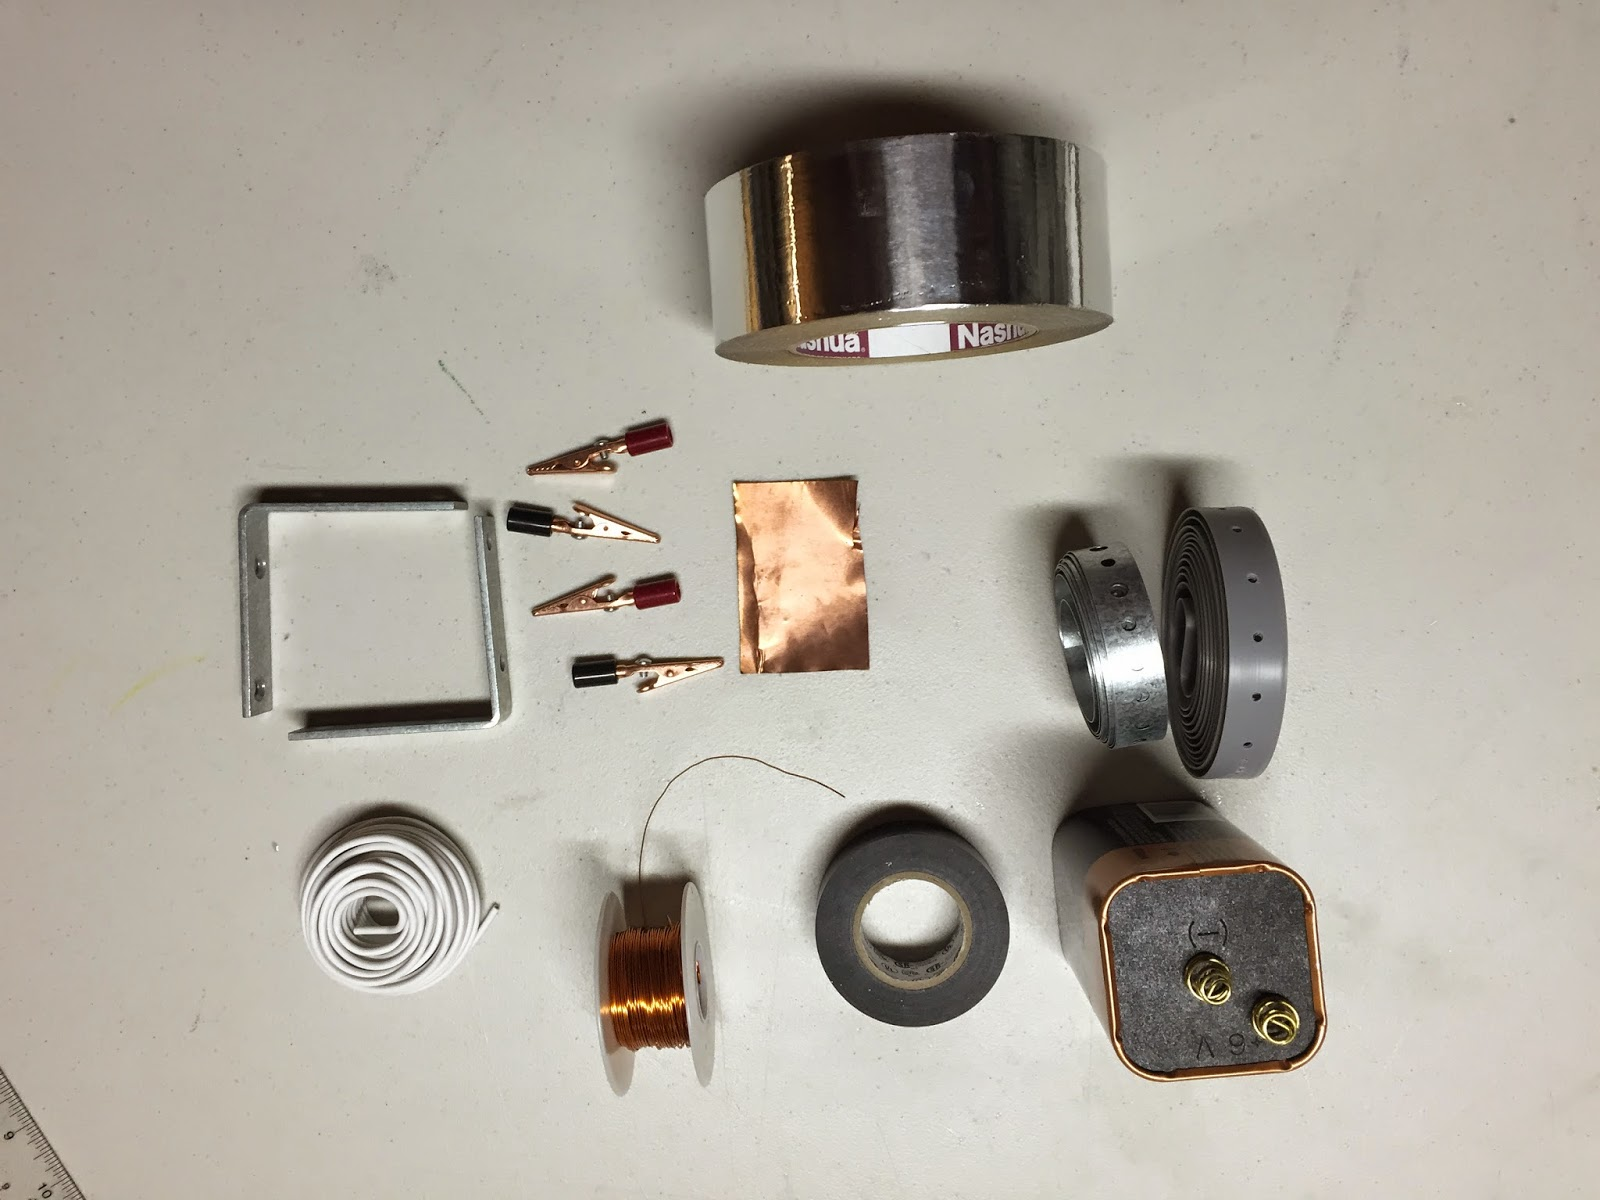 How to Build a Simple DC Motor | Blogging About Physics